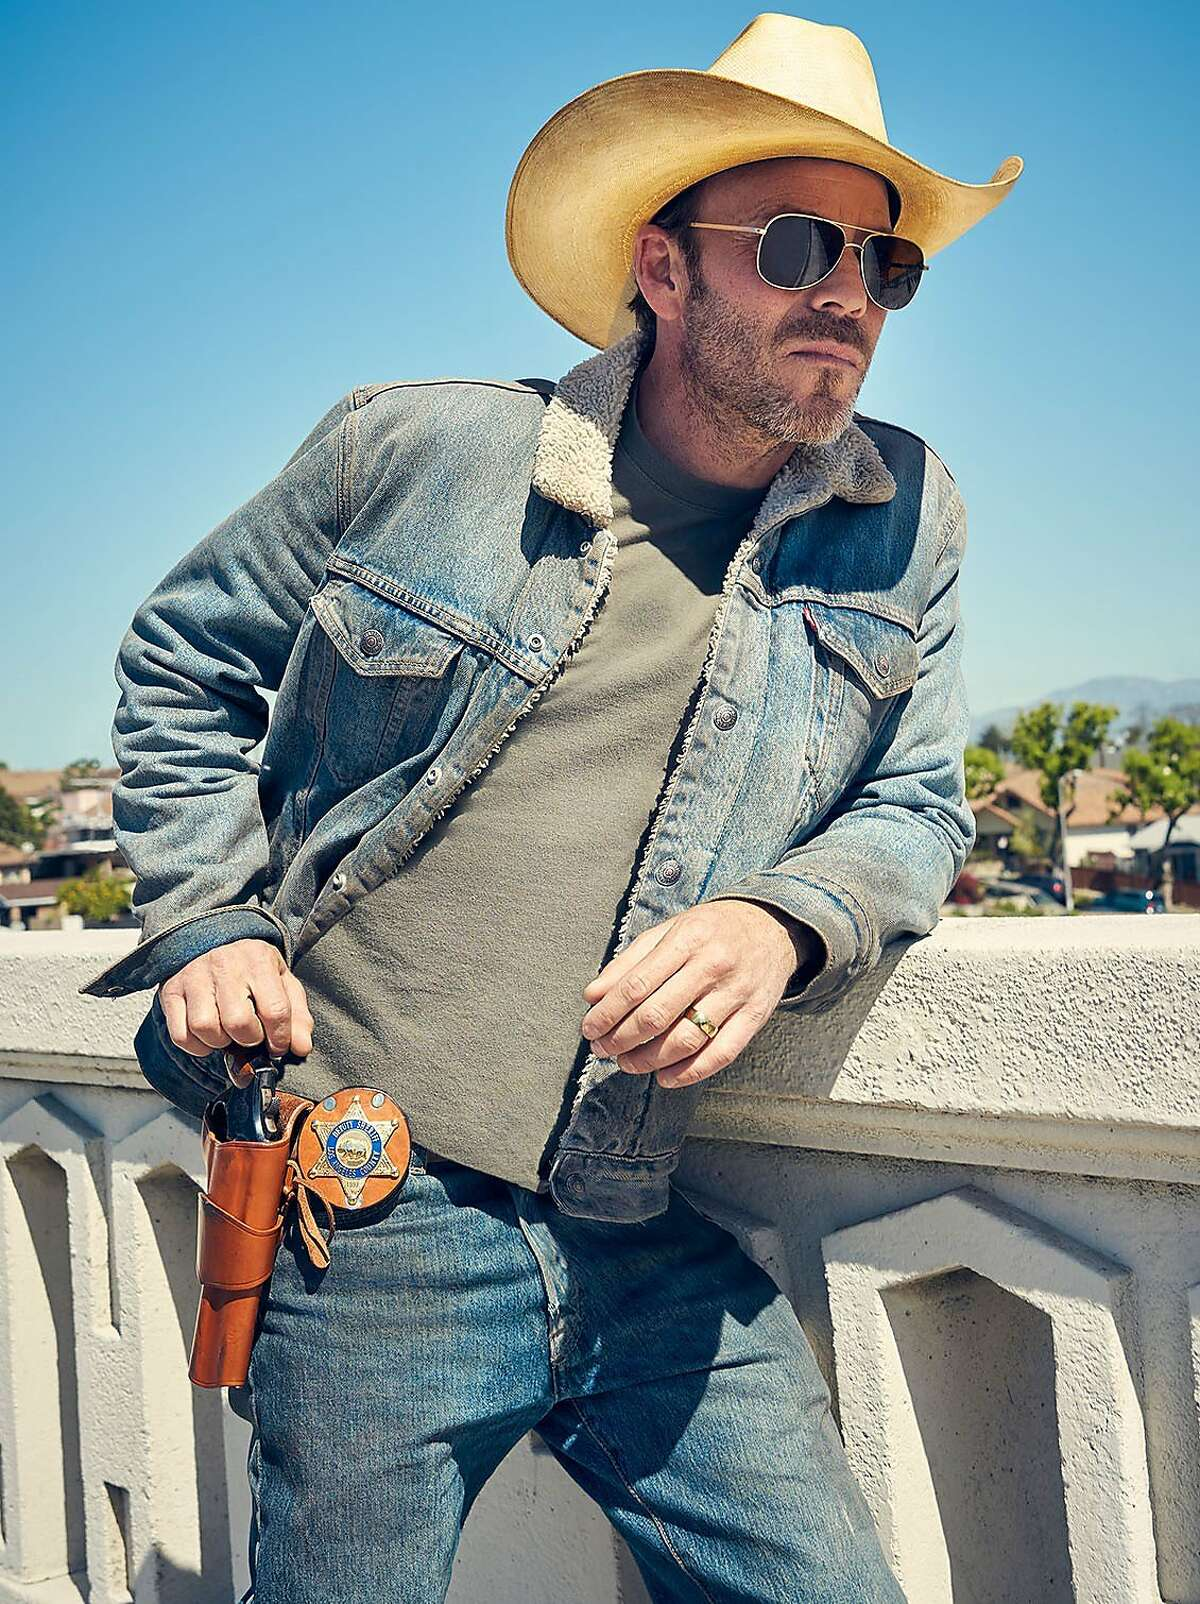 DeputyFOX The Stephen Dorff vehicle was canceled in April after a 13-episode run.